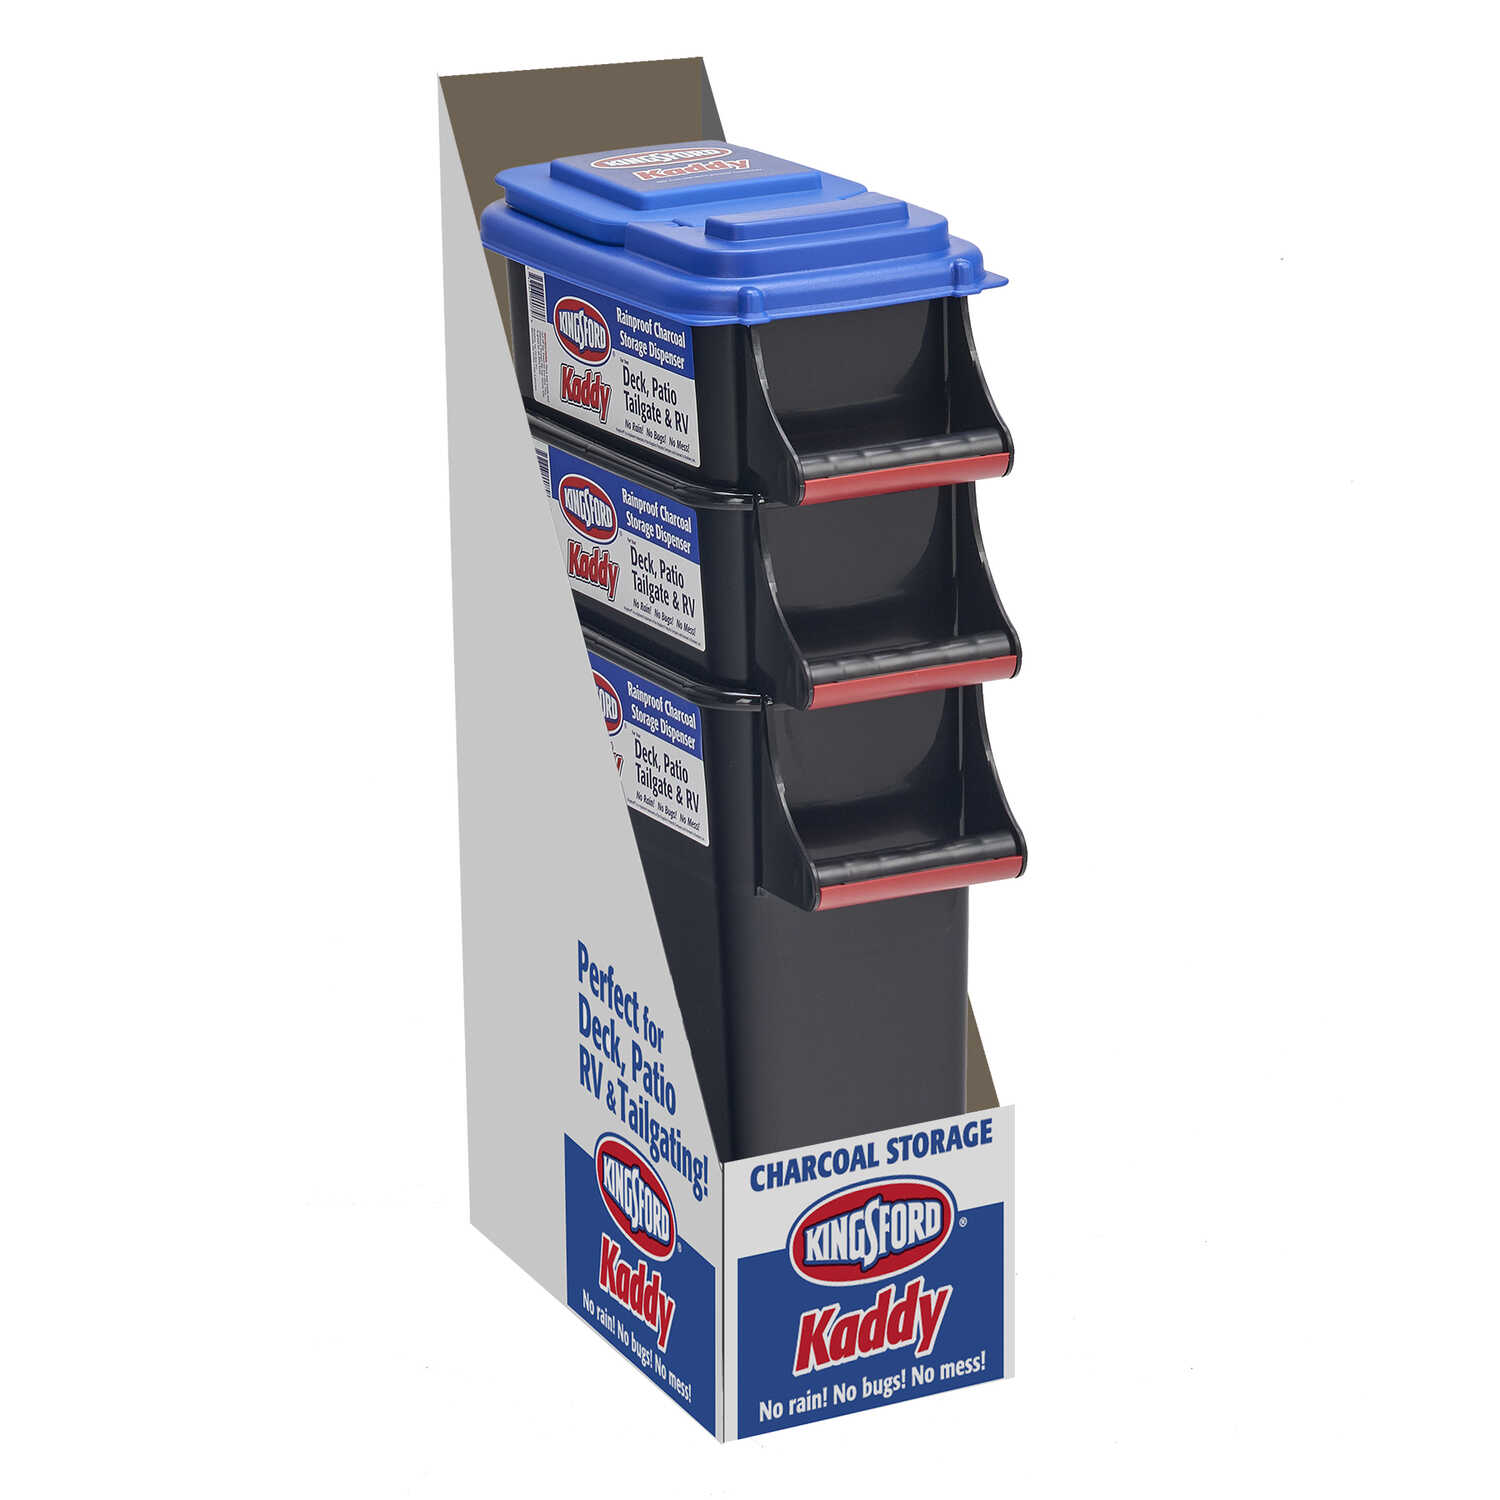 Kingsford  Buddeez Kaddy  16-1/2 in. H x 7-3/4 in. W x 14-1/2 in. D Stackable Storage Bin